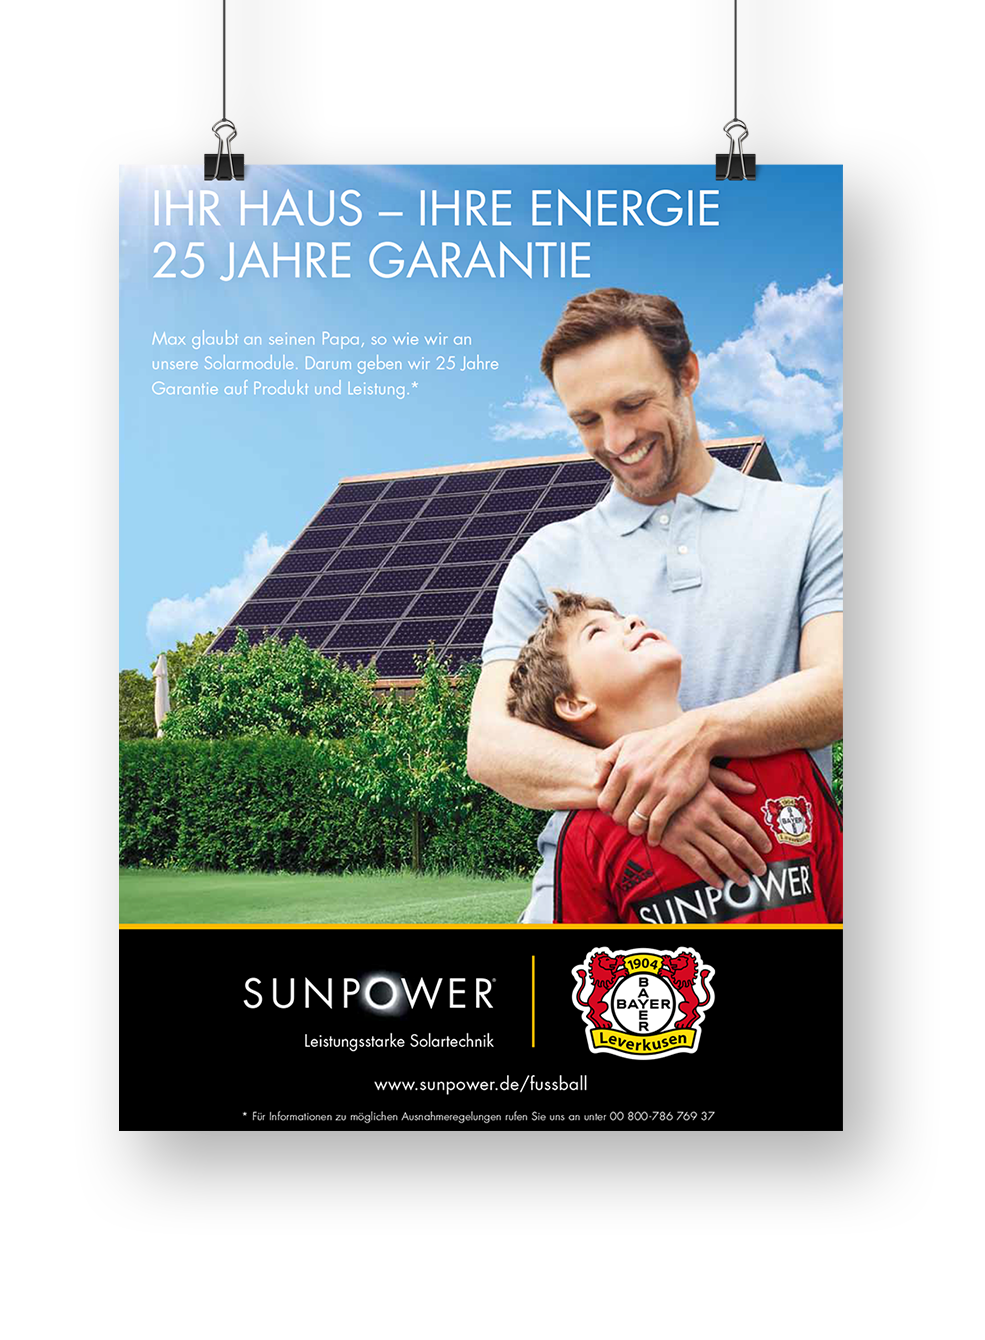 SunPower_Bayer_04_Leverkusen_mobile-2